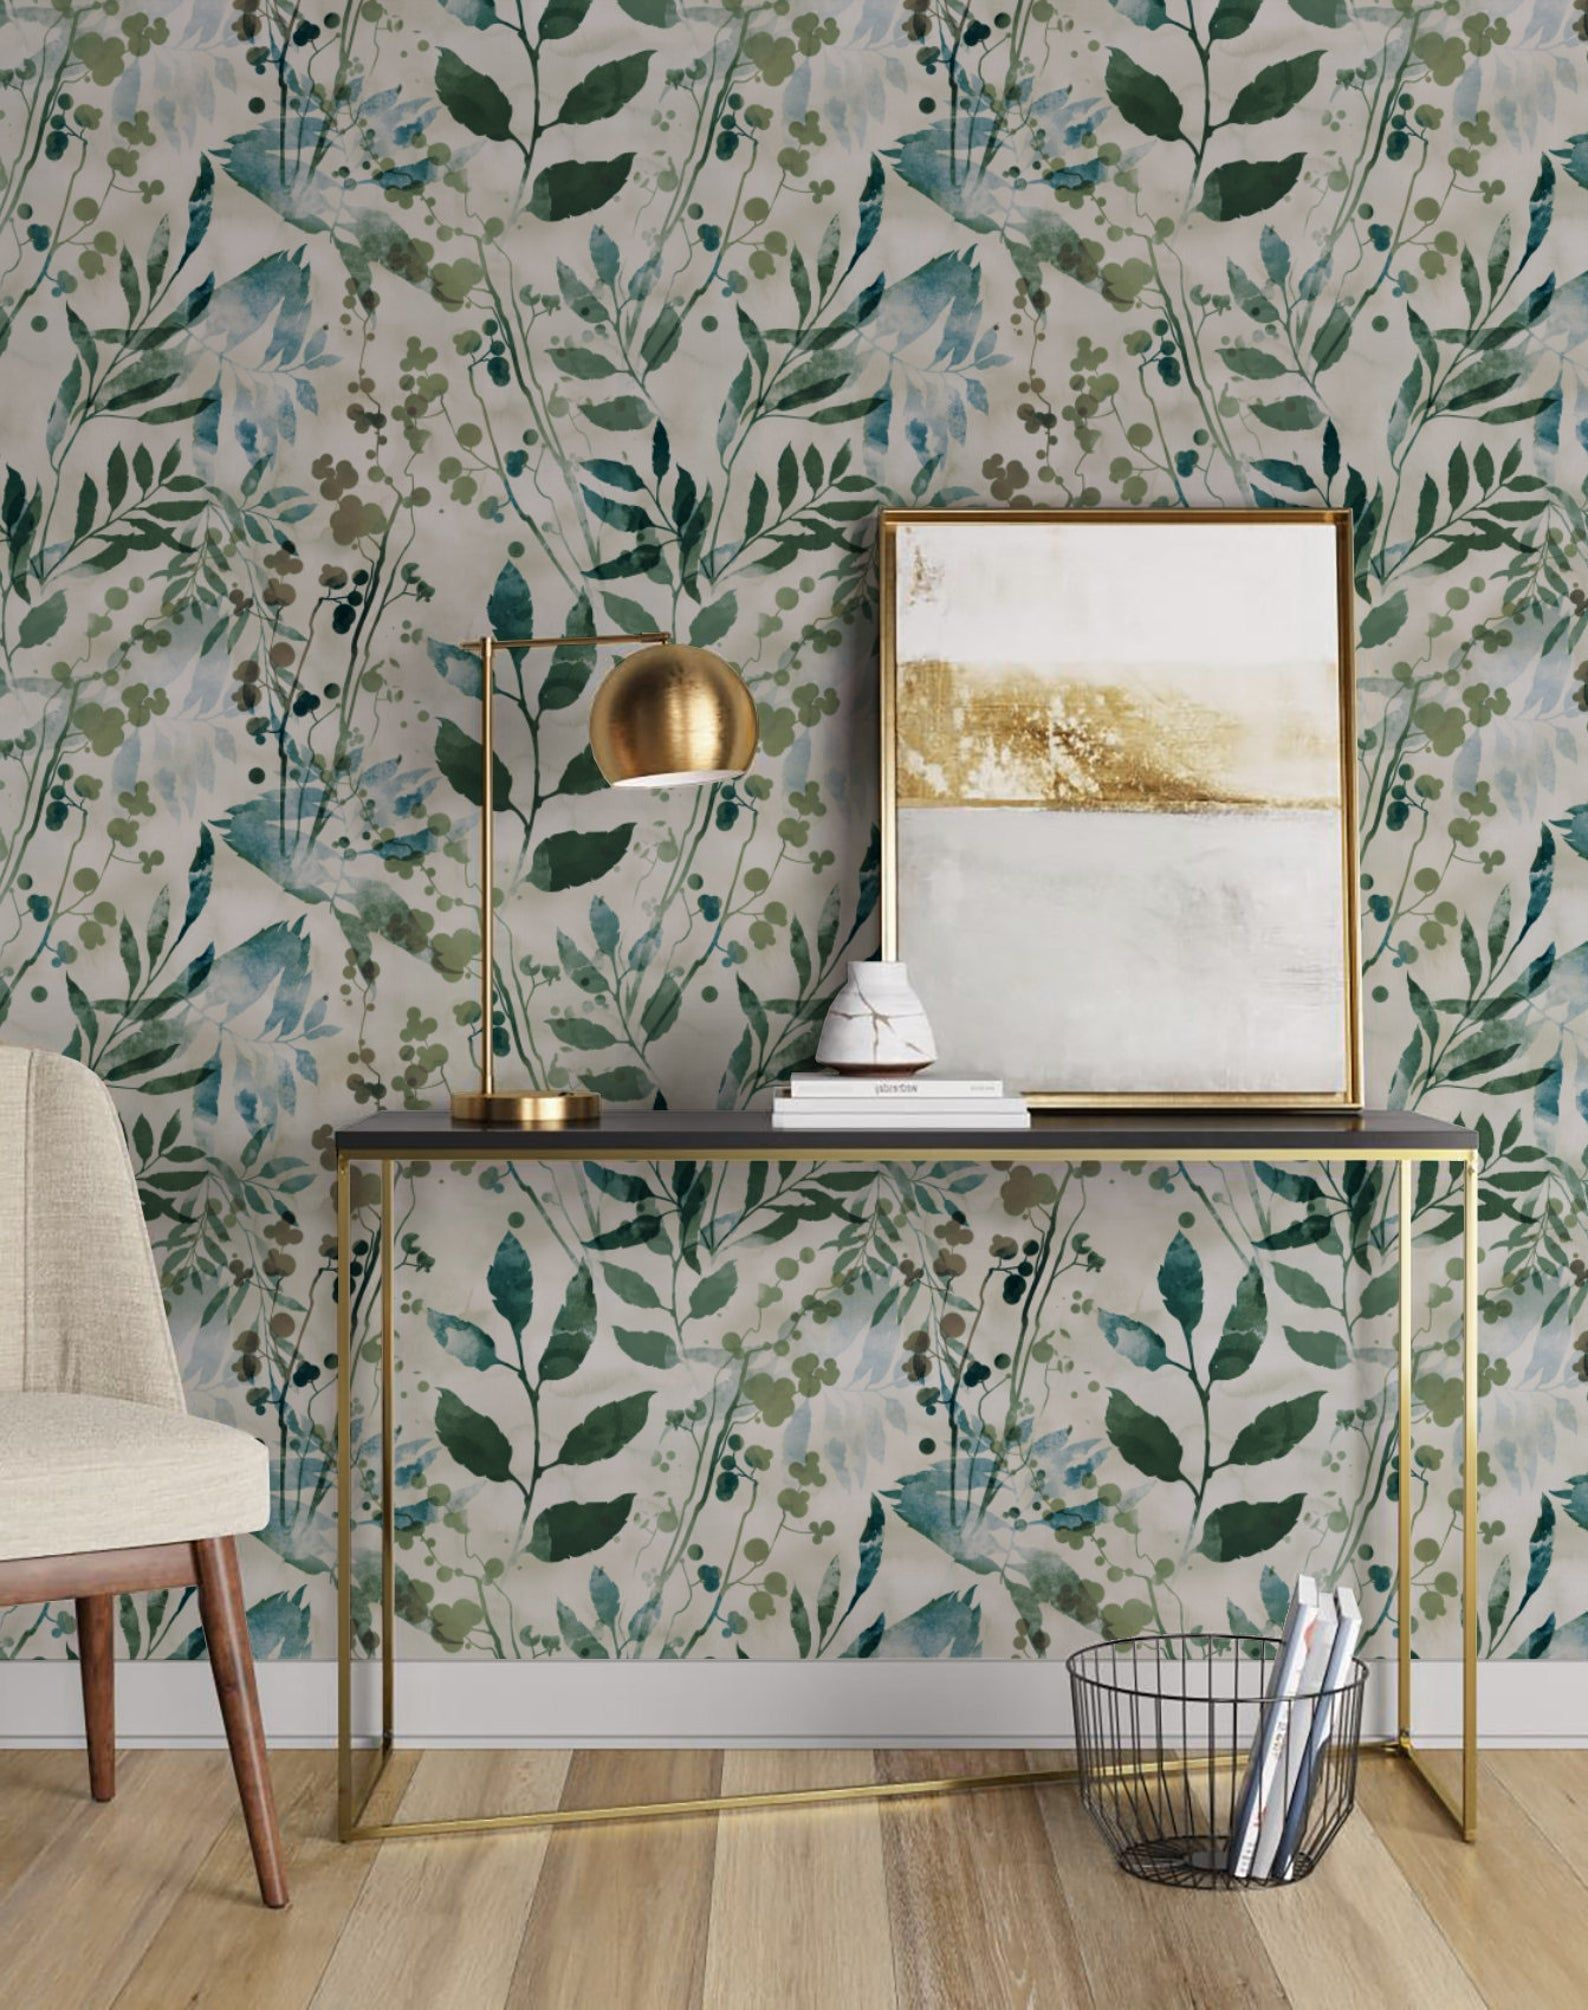 Pin on Wallpaper, Murals and Decals